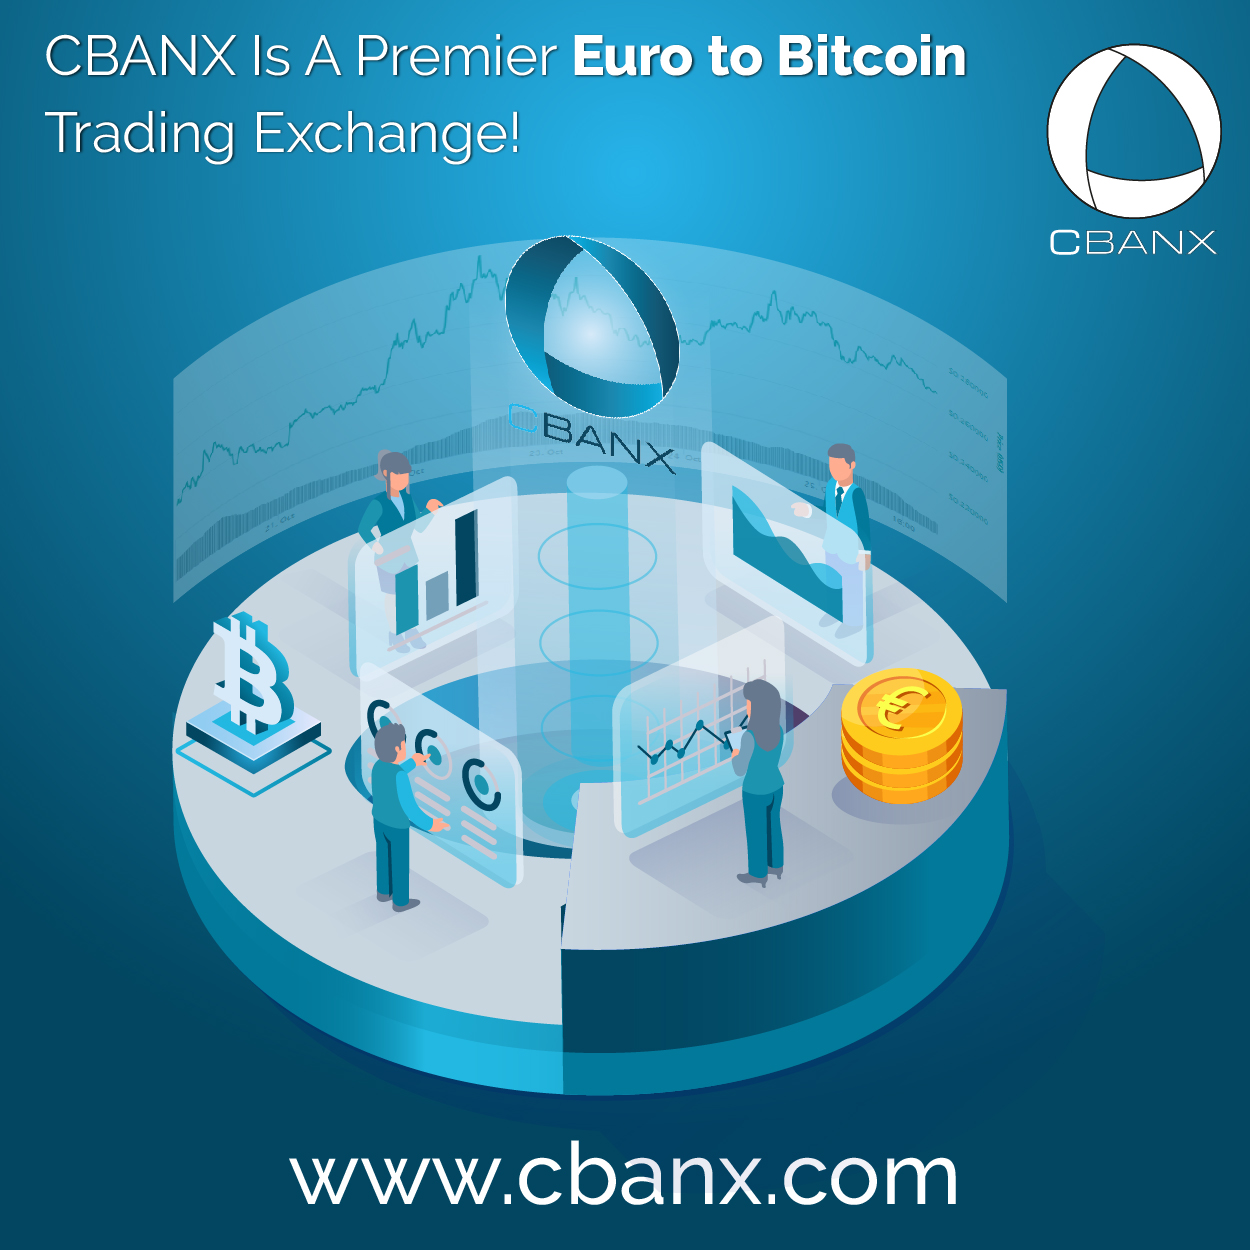 CBANX Is A Premier Euro to Bitcoin Trading Exchange!